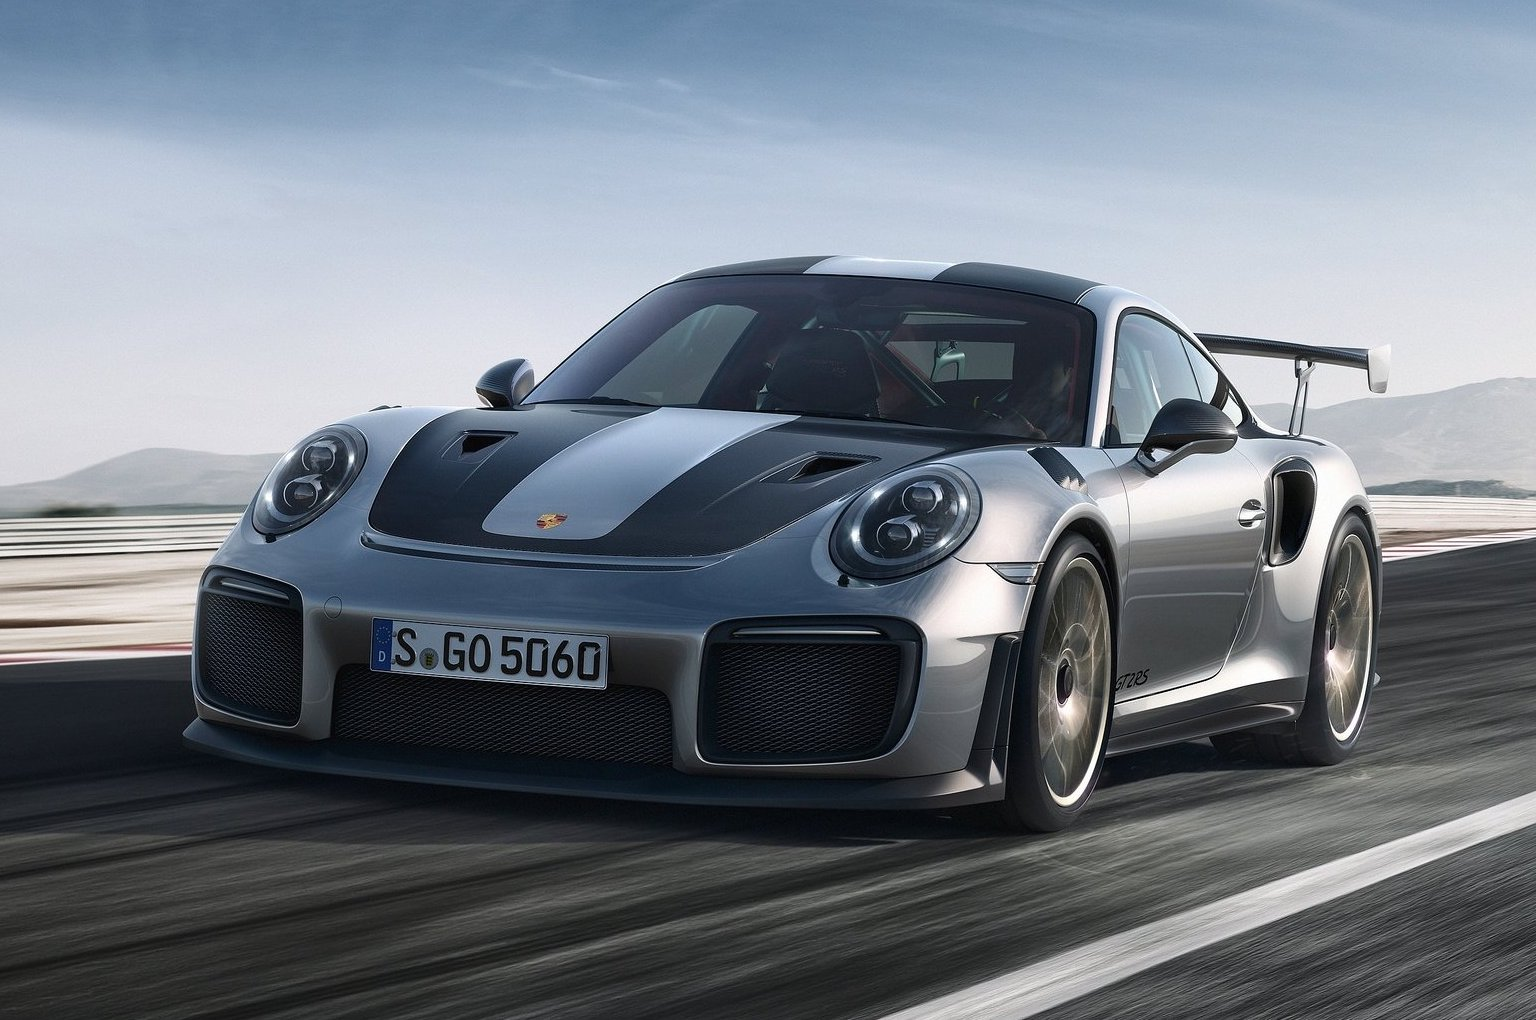 Porsche 911 GT2 RS Officially Arrives With 700 HP